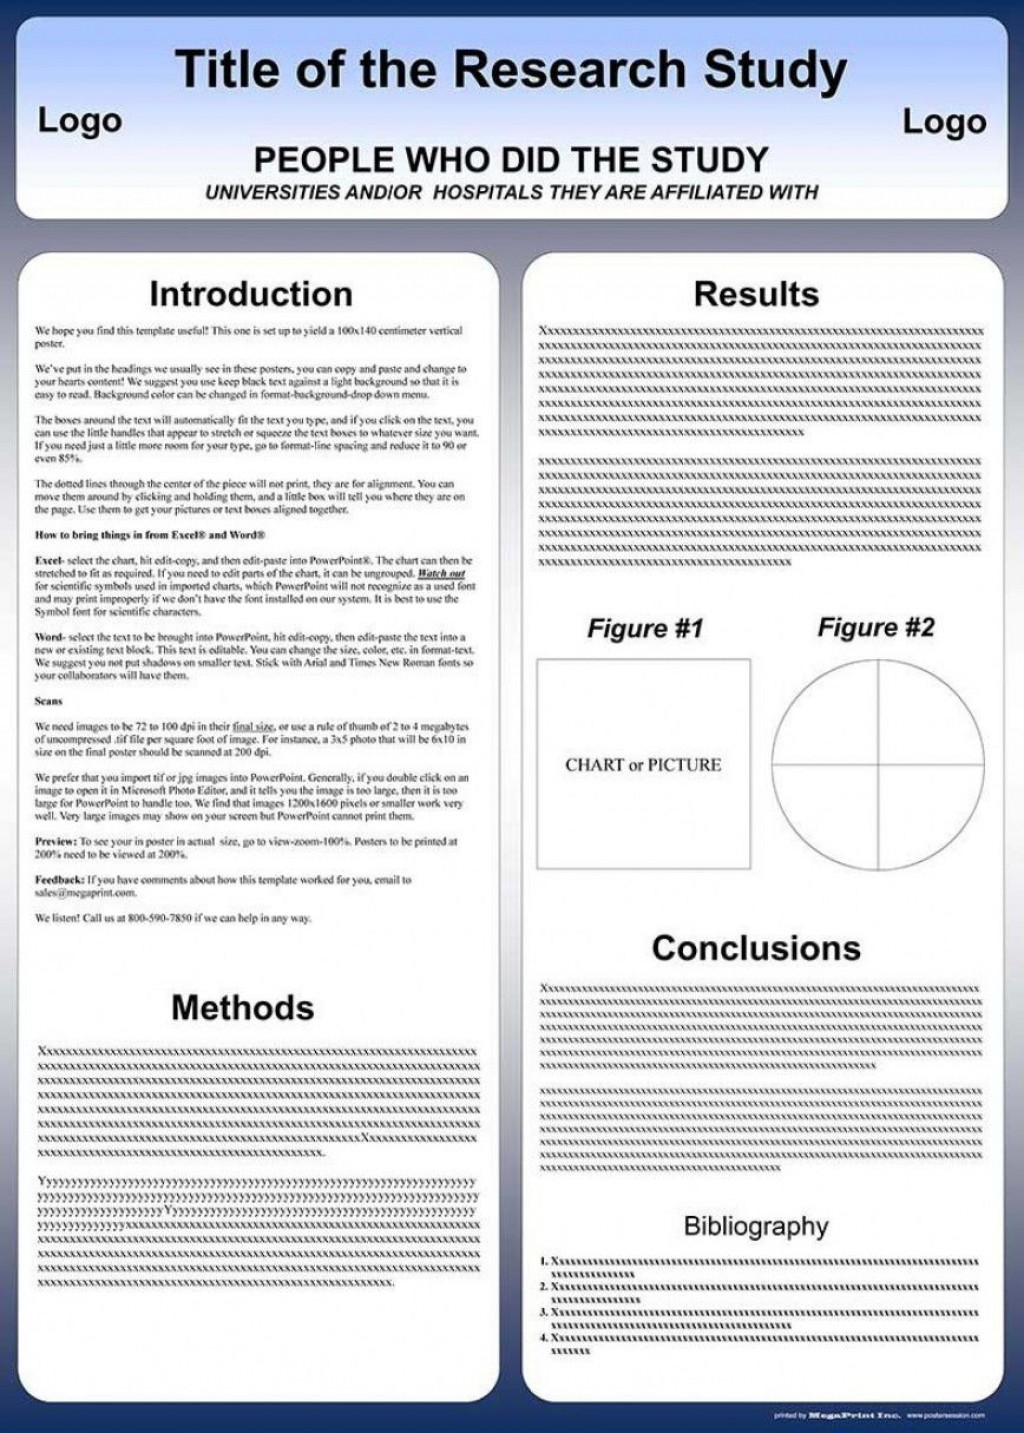 003 Amazing Scientific Poster Template A1 Free Download Photo Large